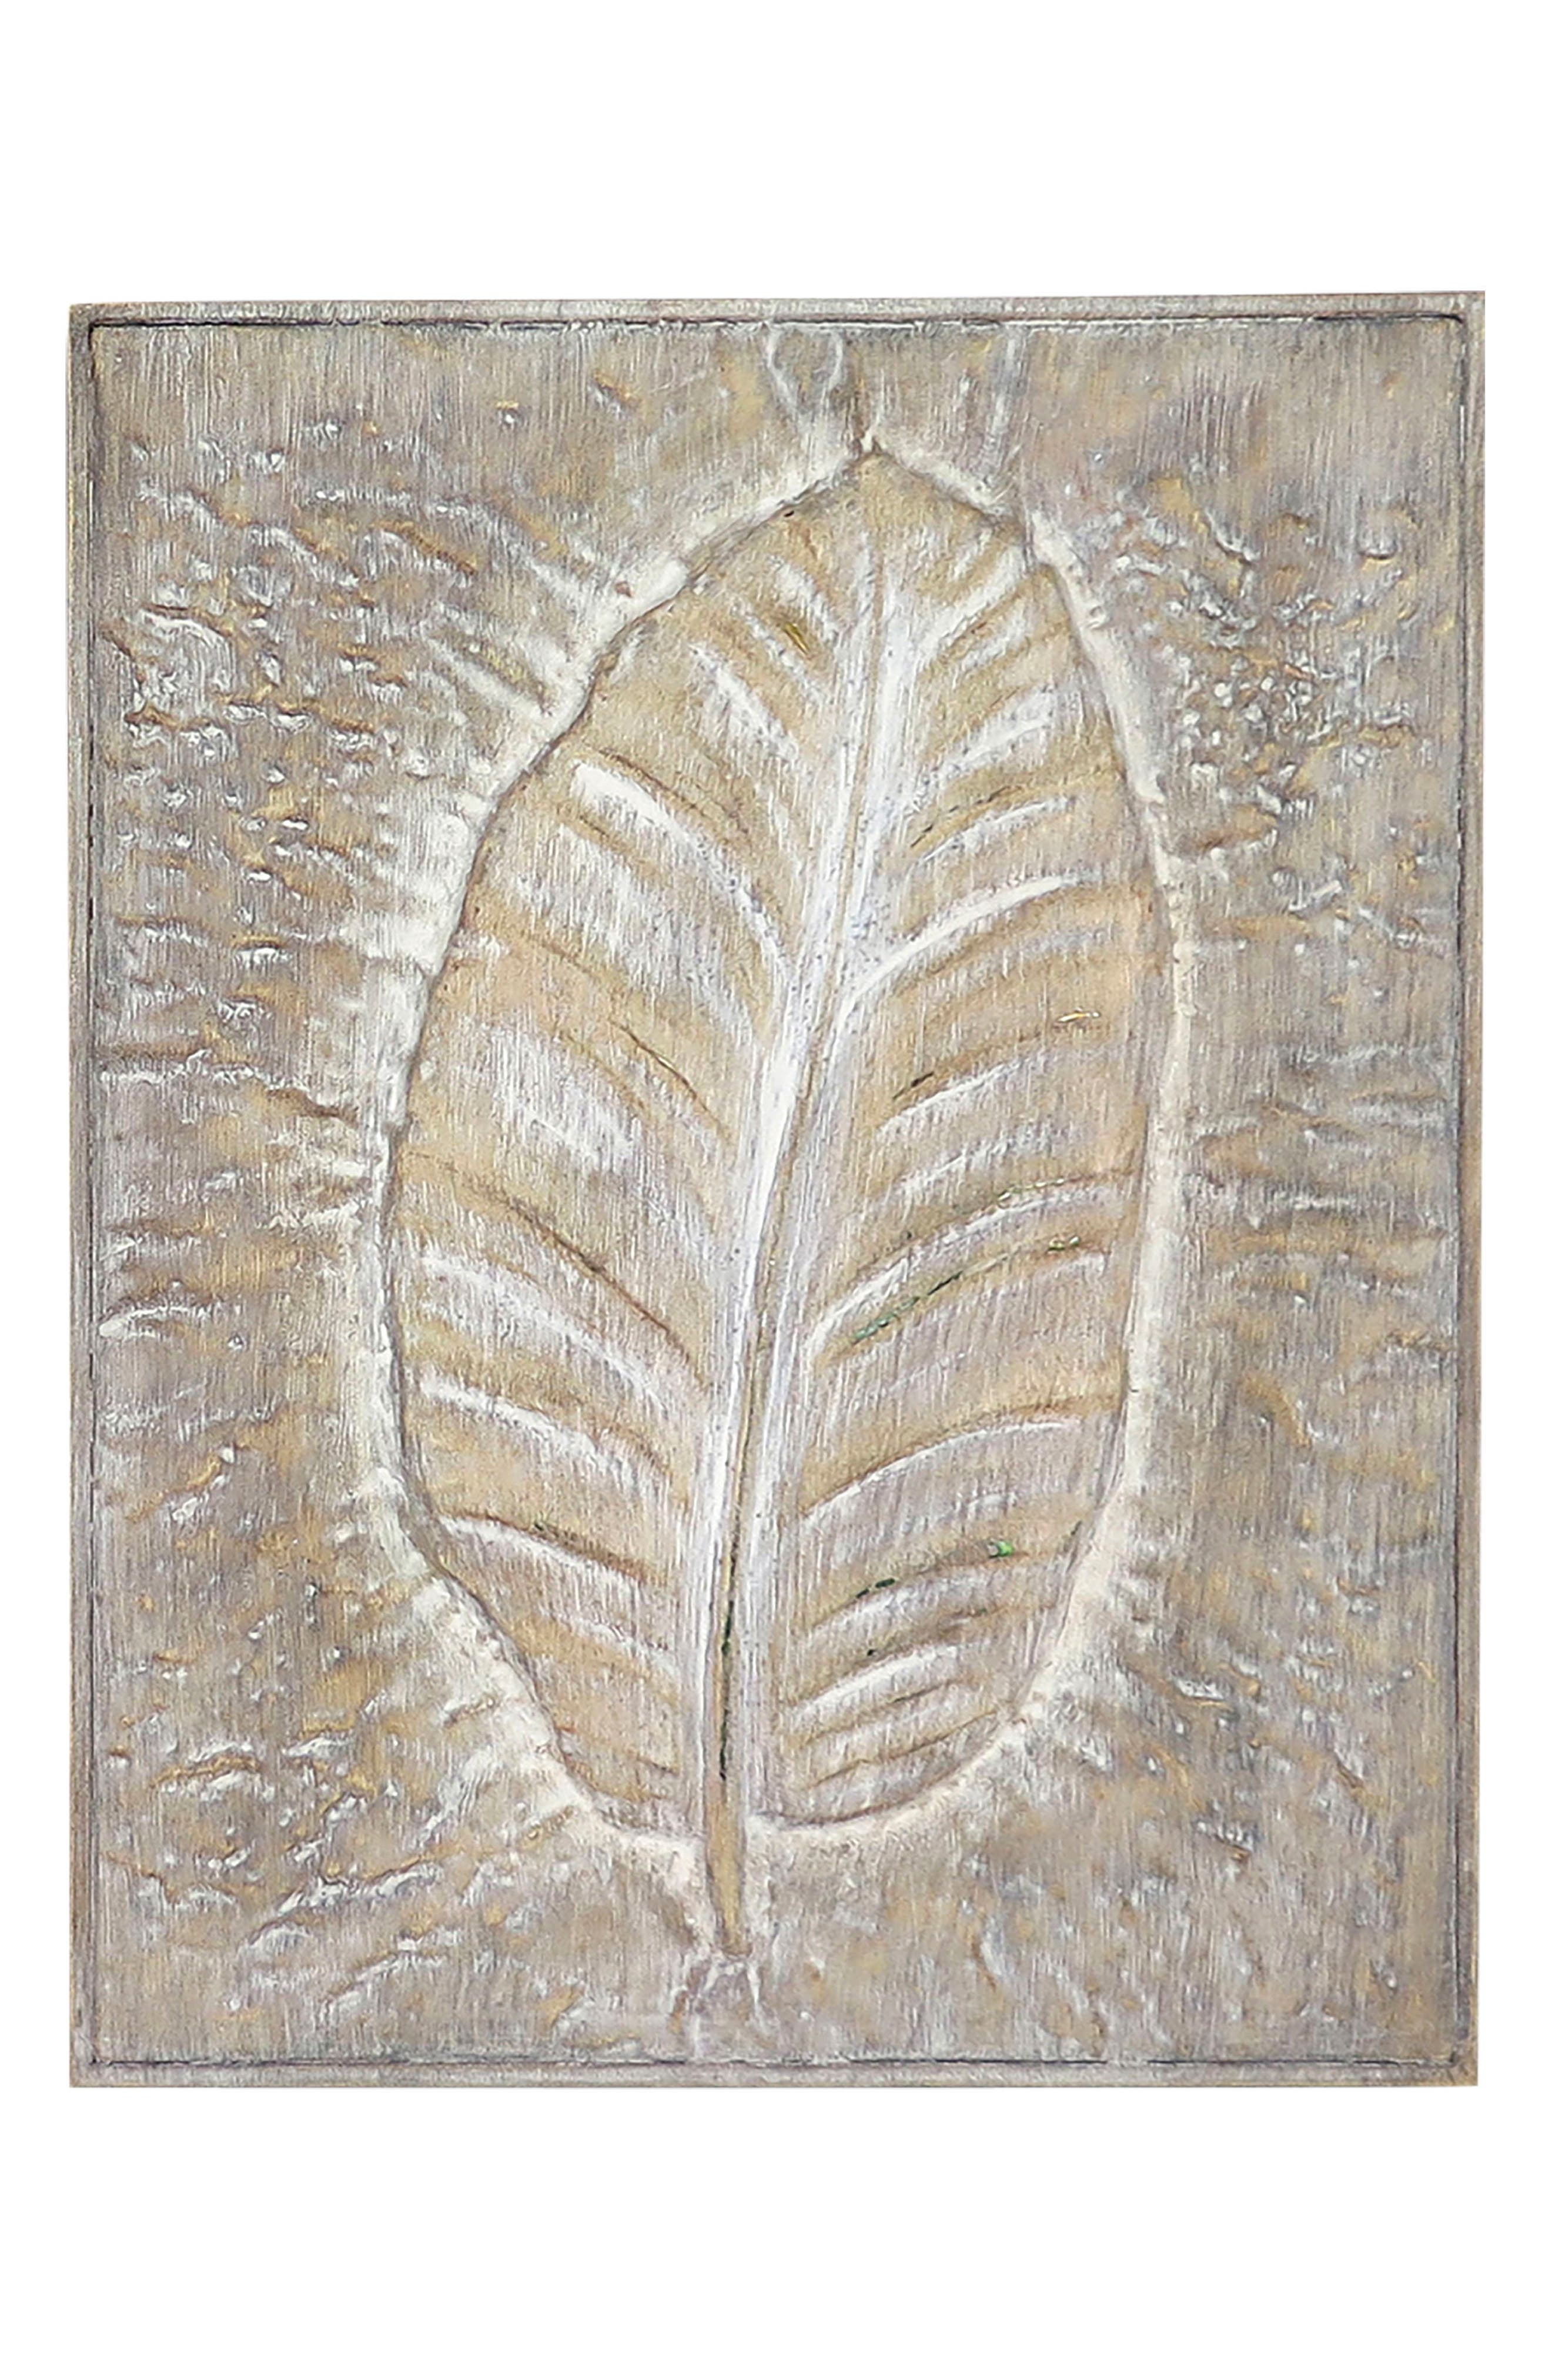 Main Image - Foreside Embossed Leaf Wood Wall Art